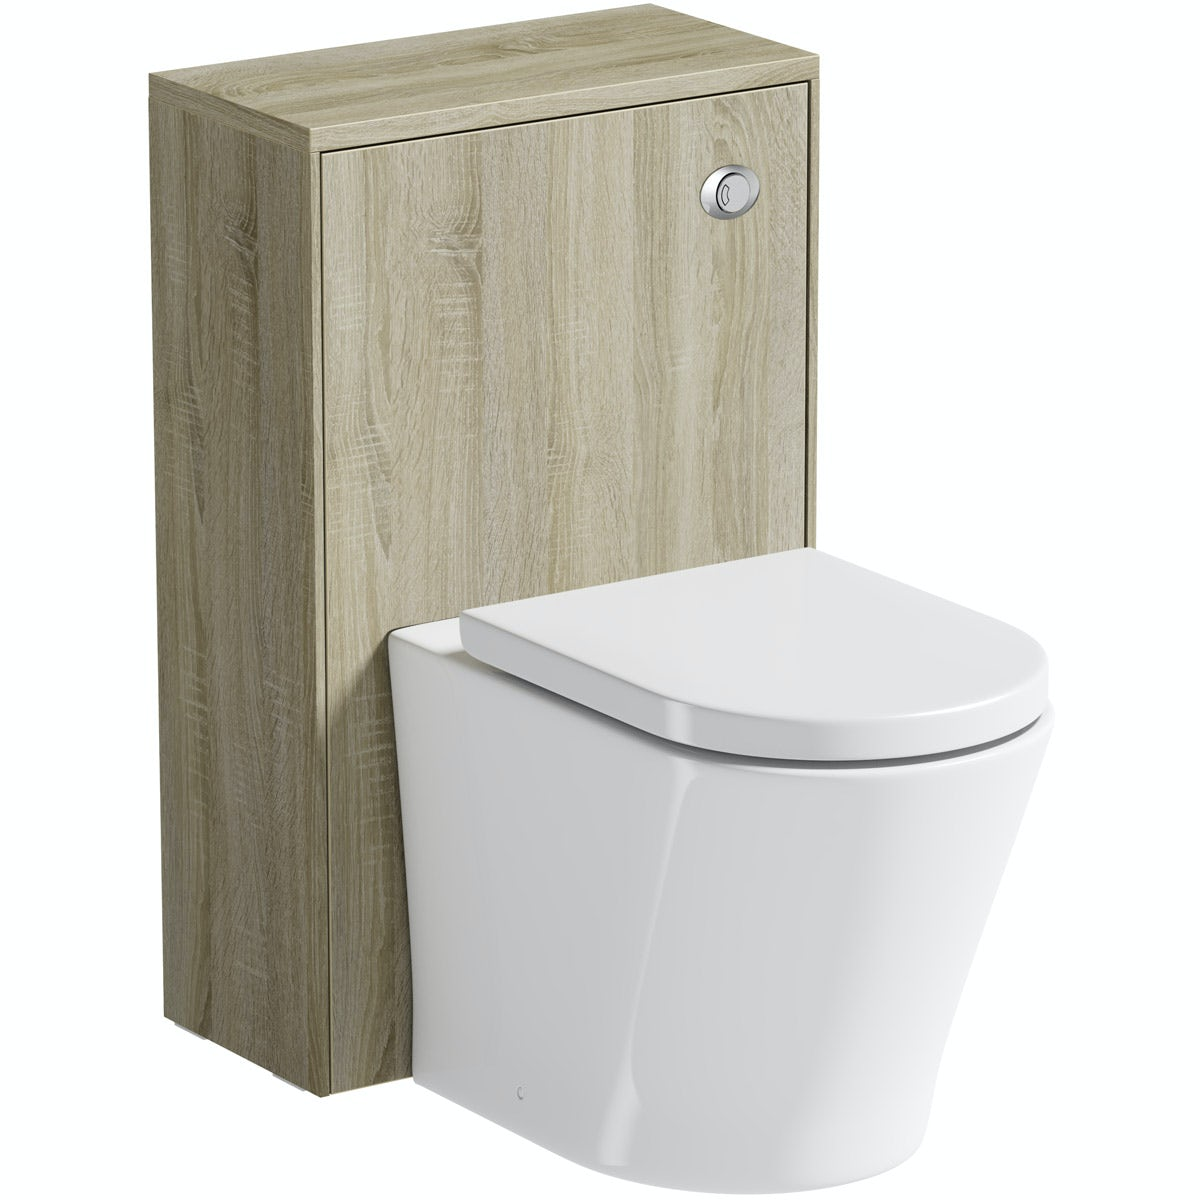 Mode Austin oak back to wall unit with contemporary toilet and seat